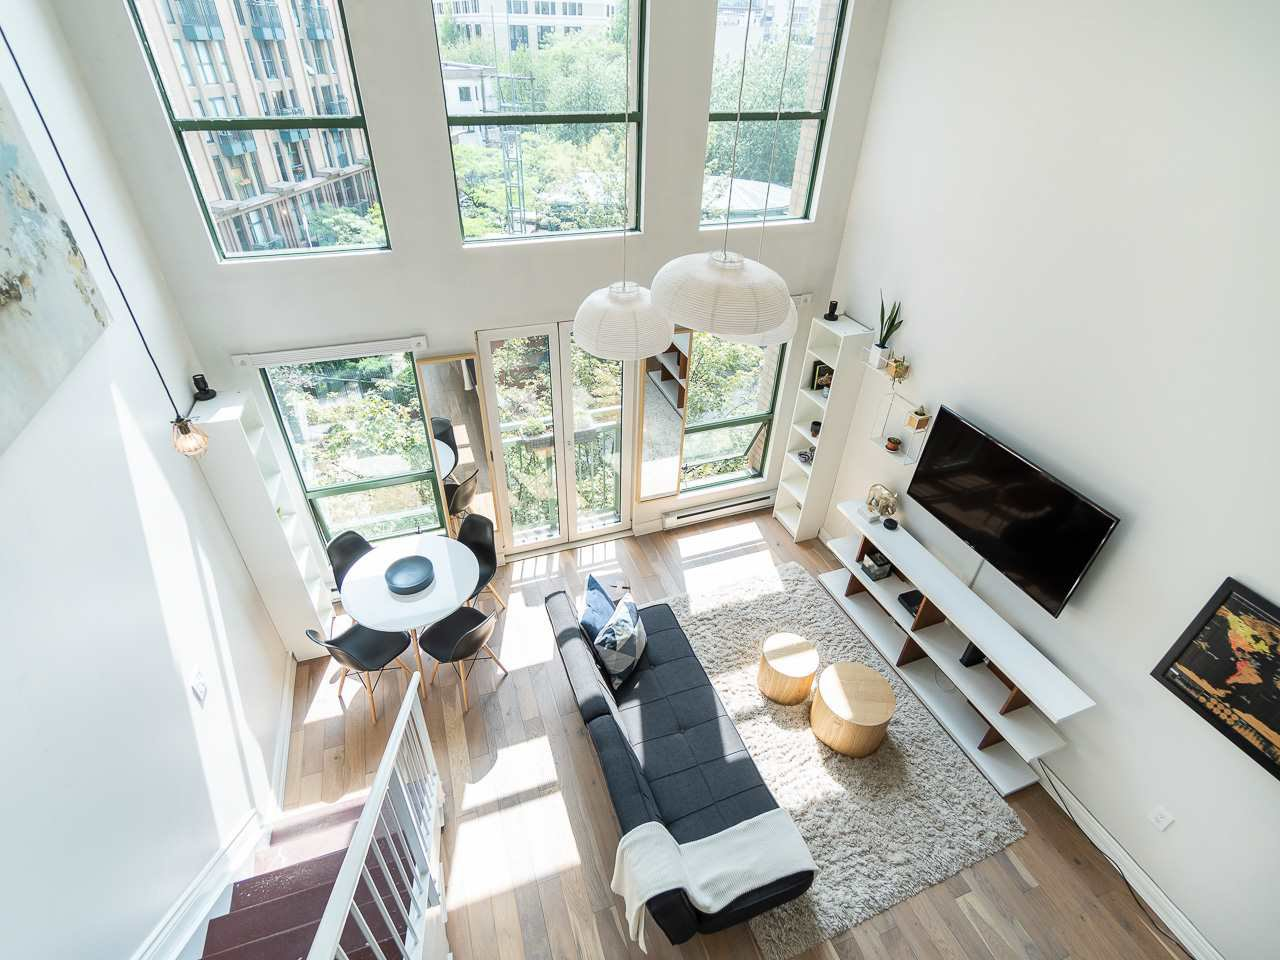 """Main Photo: 408 1 E CORDOVA Street in Vancouver: Downtown VE Condo for sale in """"Carrall Station"""" (Vancouver East)  : MLS®# R2394521"""